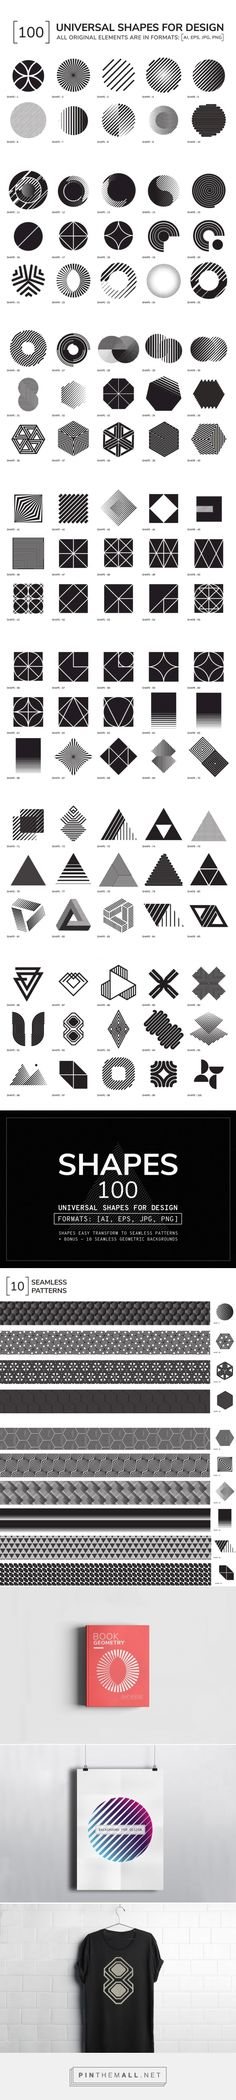 100 Geometric Shapes Part 1 - Graphics - YouWorkForThem - Designed by Vanzyst - This product download contains 110 files. Set of 100 individual geometric shapes for your the best projects + BONUS 10 seamless patterns. All objects easy transform to seamless patterns. Universal vector geometric elements in black color is suitable for logo design, business cards, brand books, photography, posters, postcards, patterns etc. (affiliate)